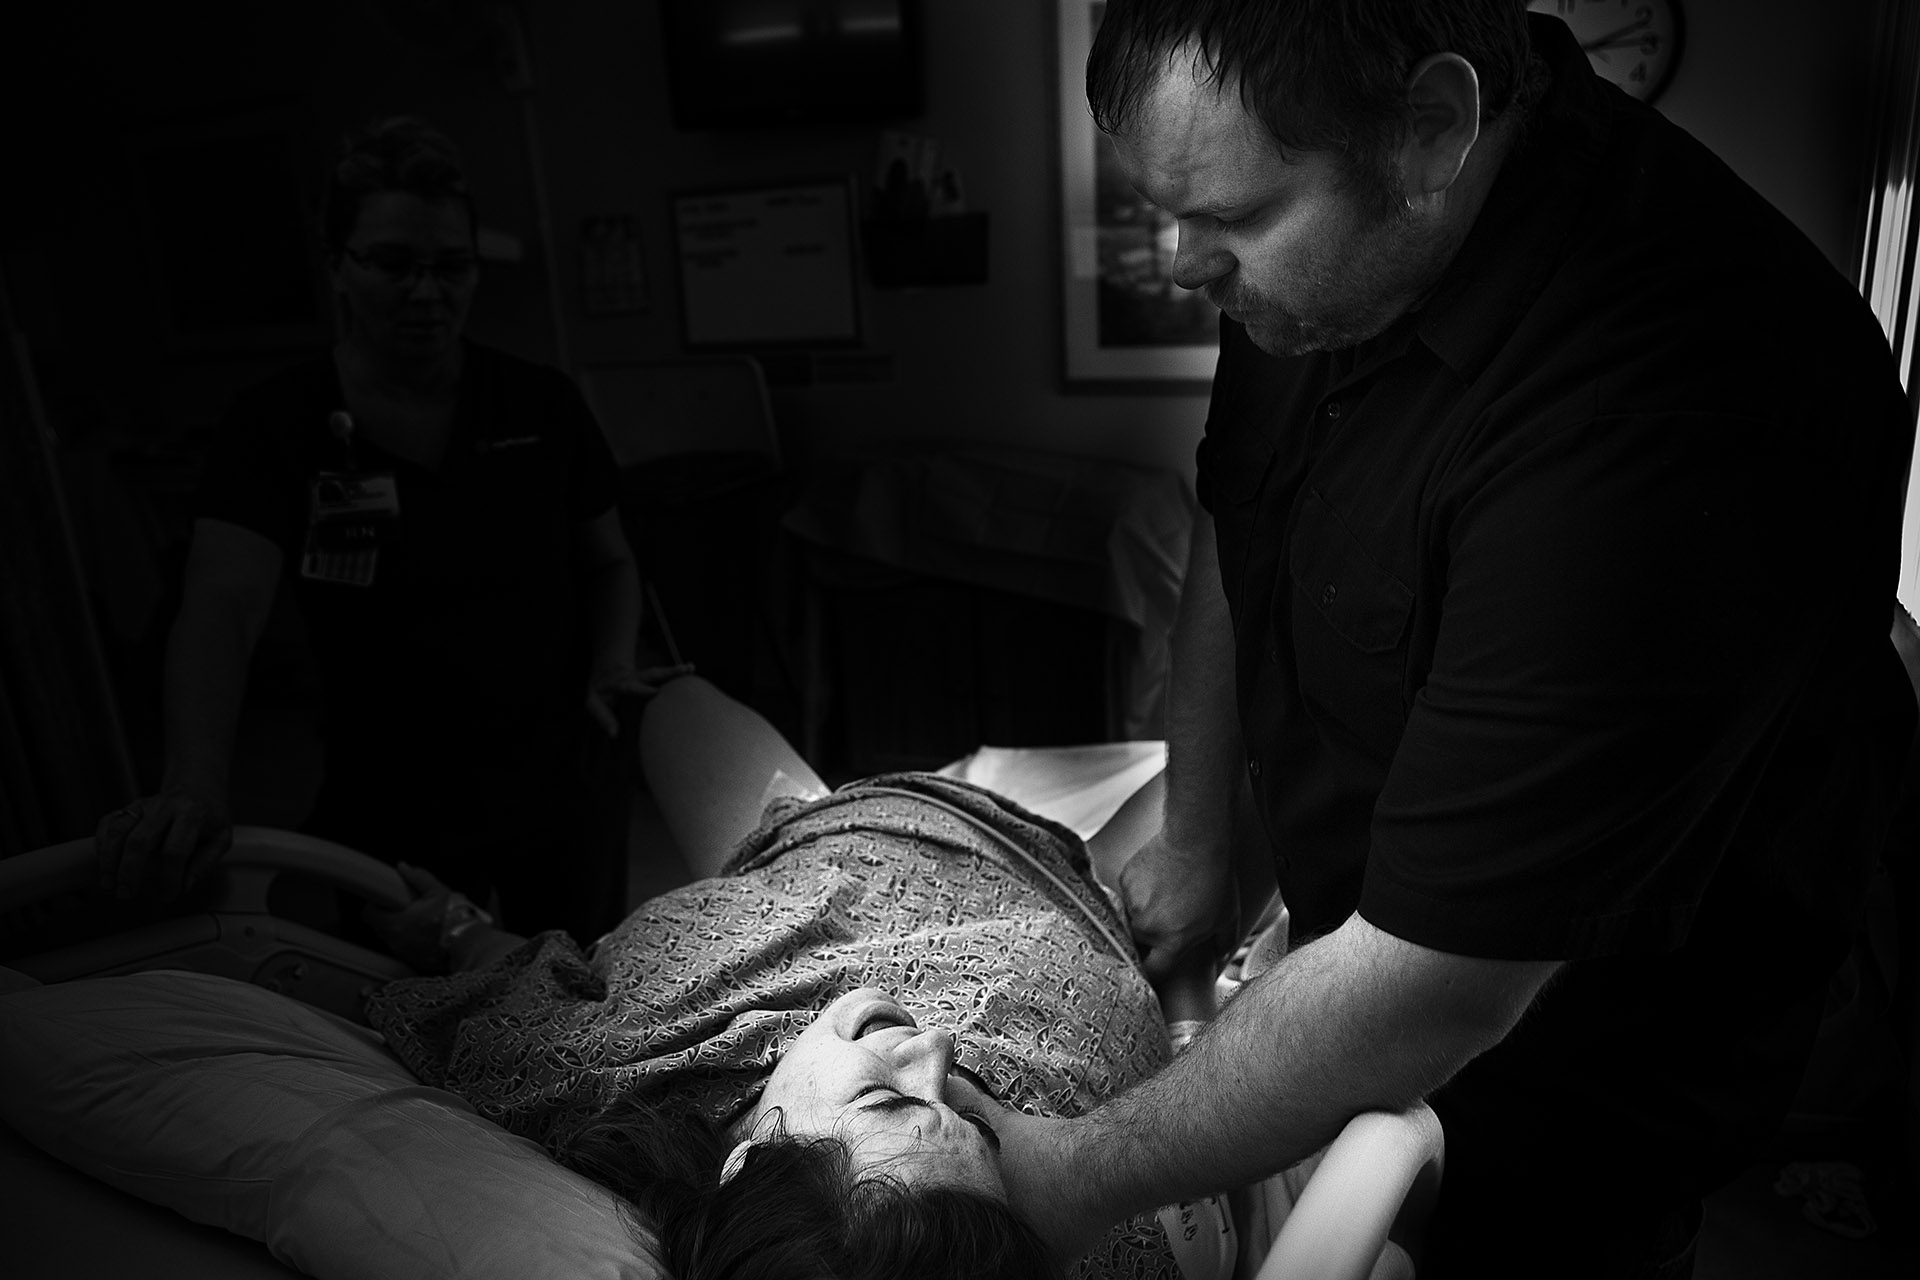 Black and White image of a laboring mother in pain being supported by her partner.